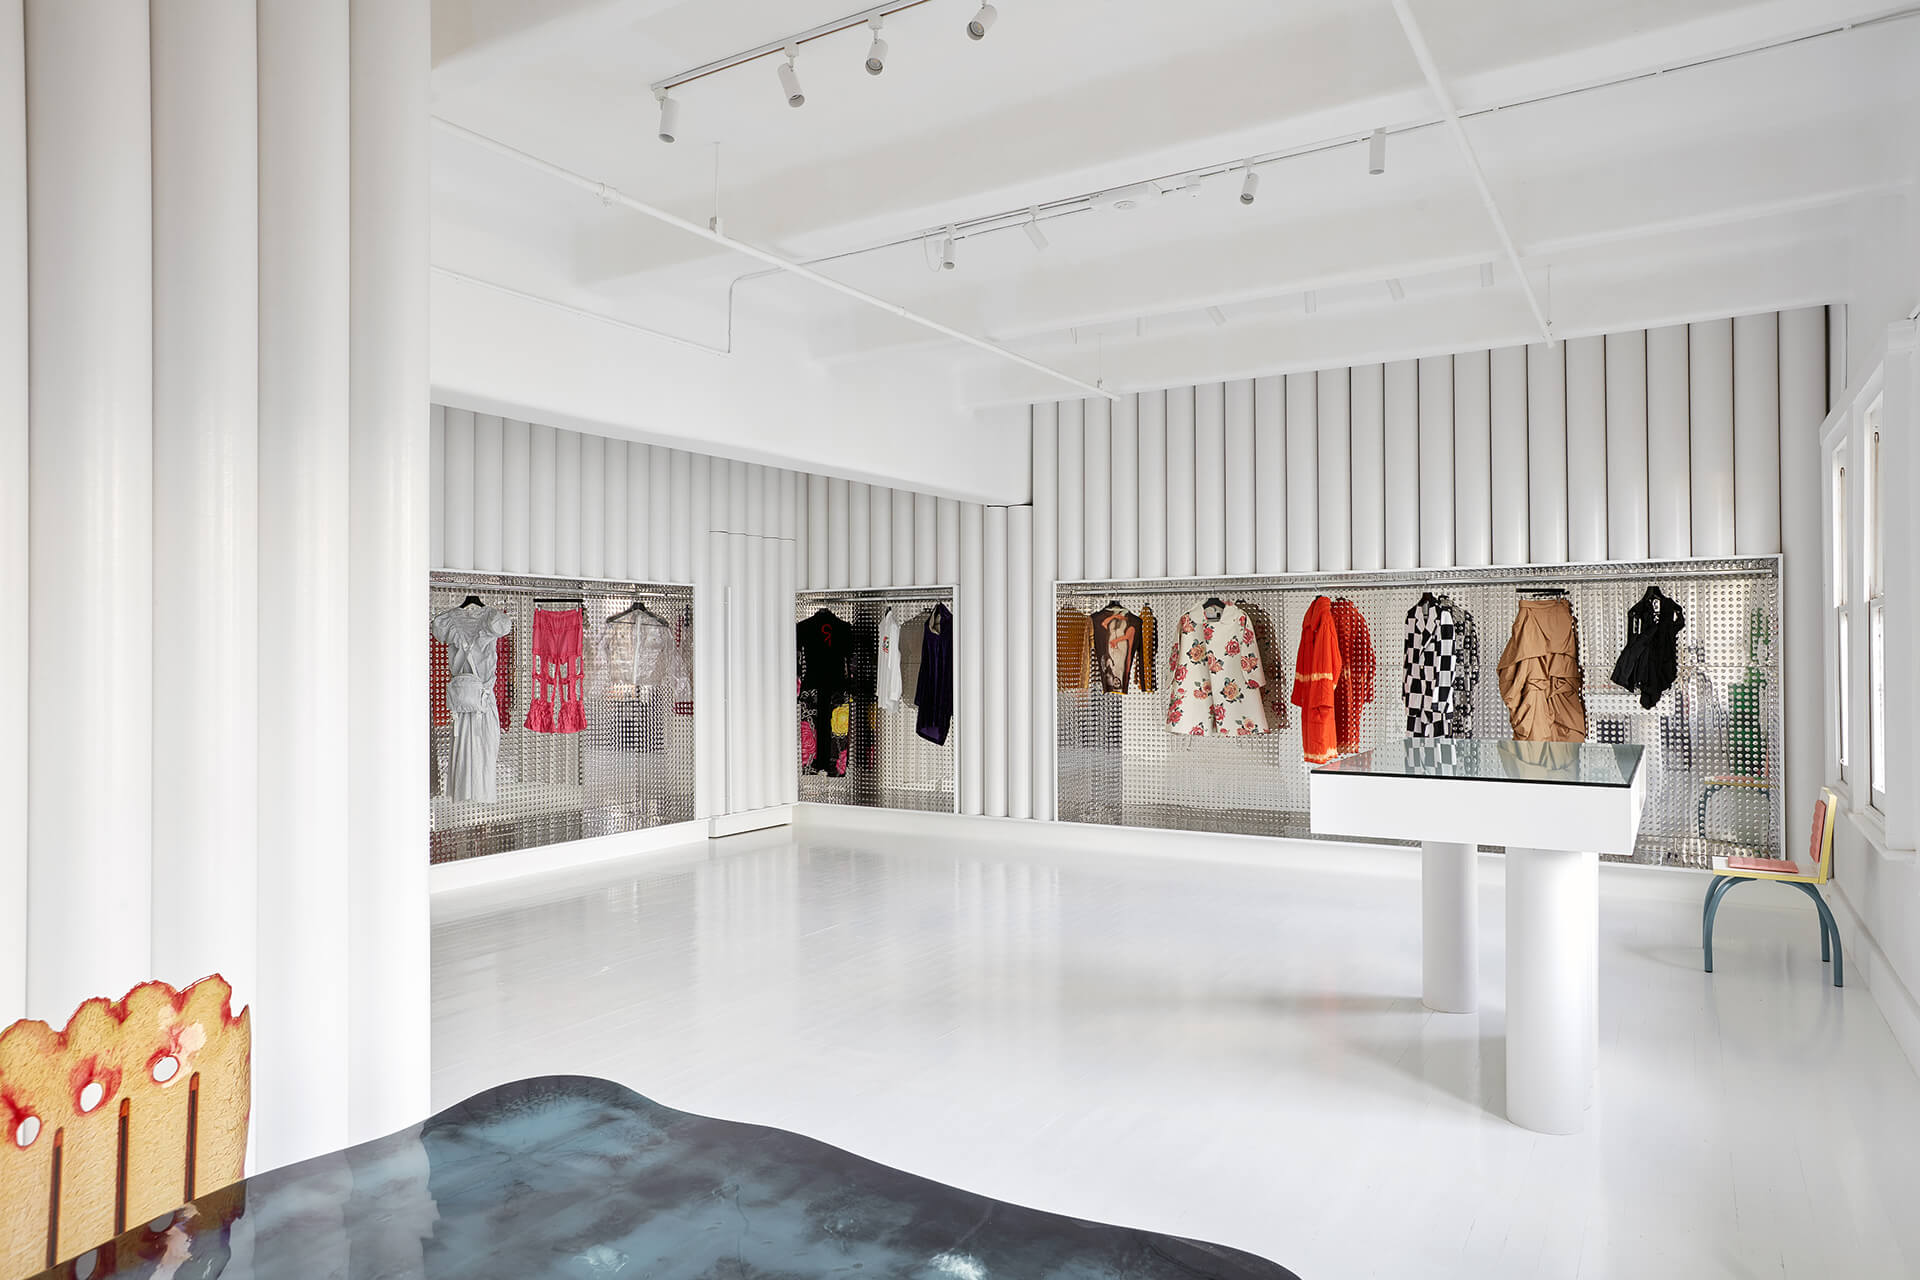 Dot Comme Collection Shop By Sibling Studio Lip Cream Amalia Matte Morocco Nude 03 System To Help Order His Which At The Time Was Bursting Through Walls Of A Storage Unit Said Lead Architect Amelia